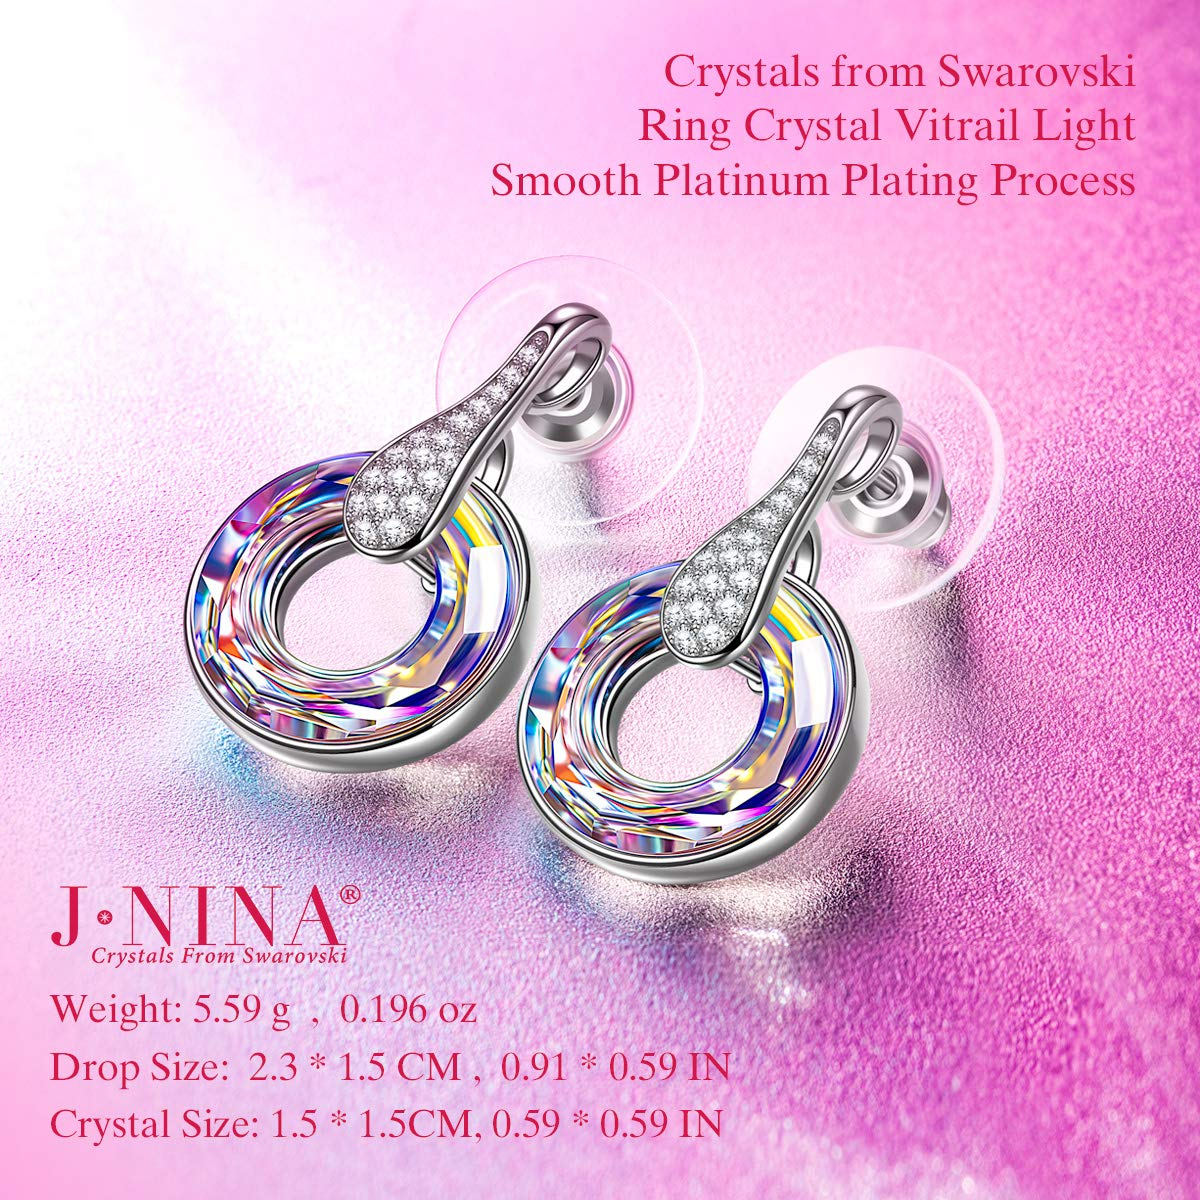 Amazon.com: J.NINA Christmas Jewelry Gifts Wish Earrings for Women Stud  Earring with Purple Crystals from Swarovski Earrings for Her Anniversary  Birthday ...